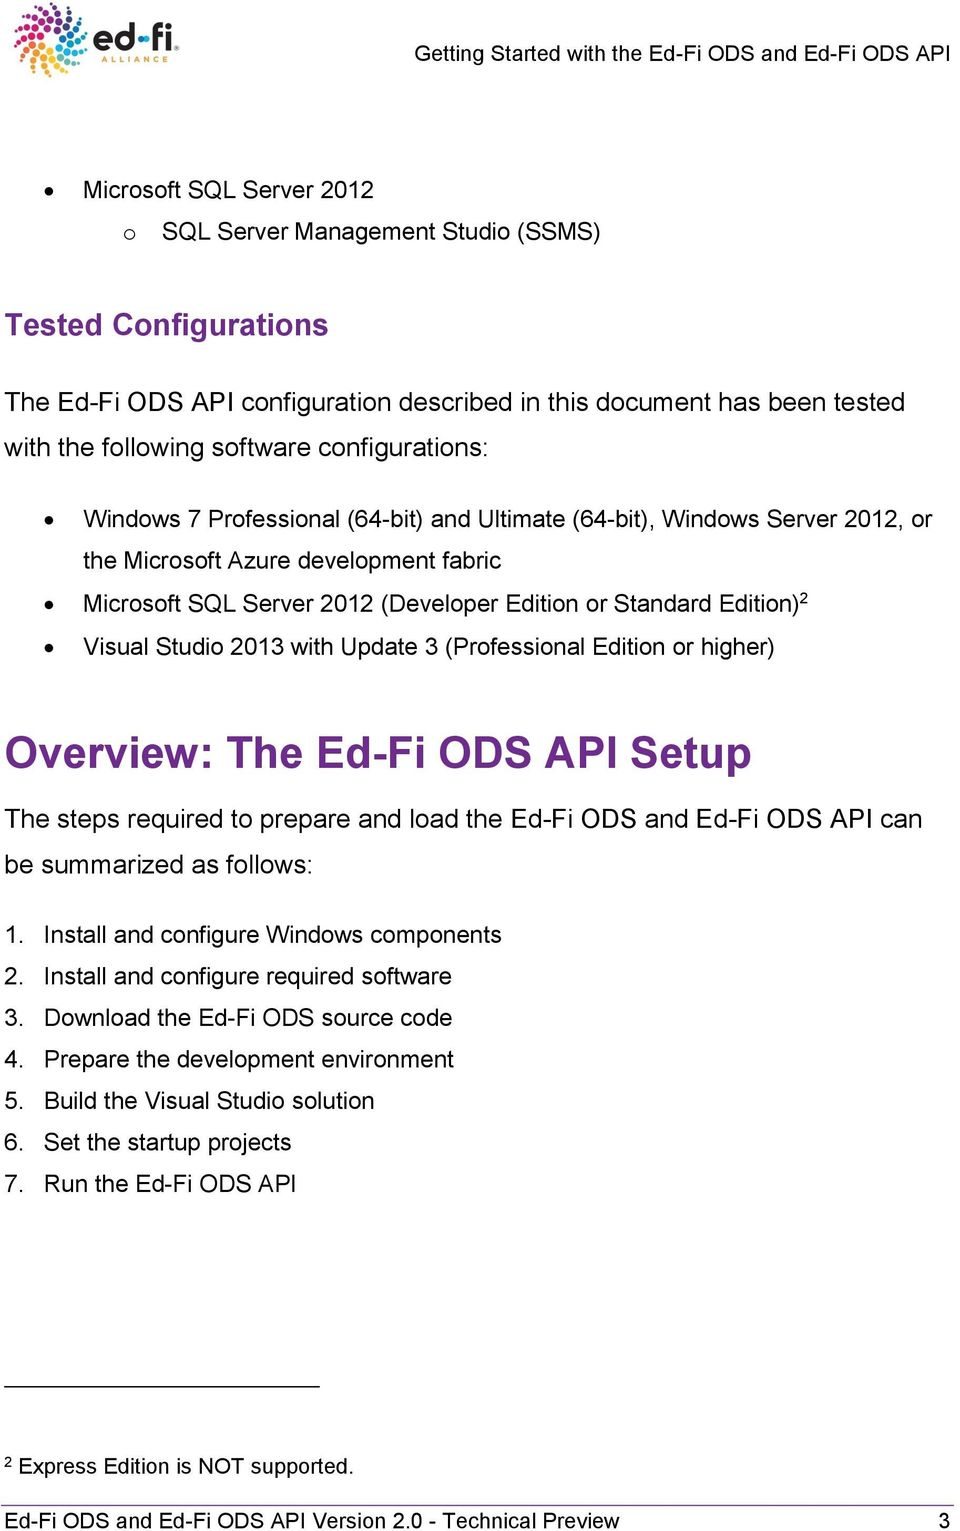 2 Visual Studio 2013 with Update 3 (Professional Edition or higher) Overview: The Ed-Fi ODS API Setup The steps required to prepare and load the Ed-Fi ODS and Ed-Fi ODS API can be summarized as